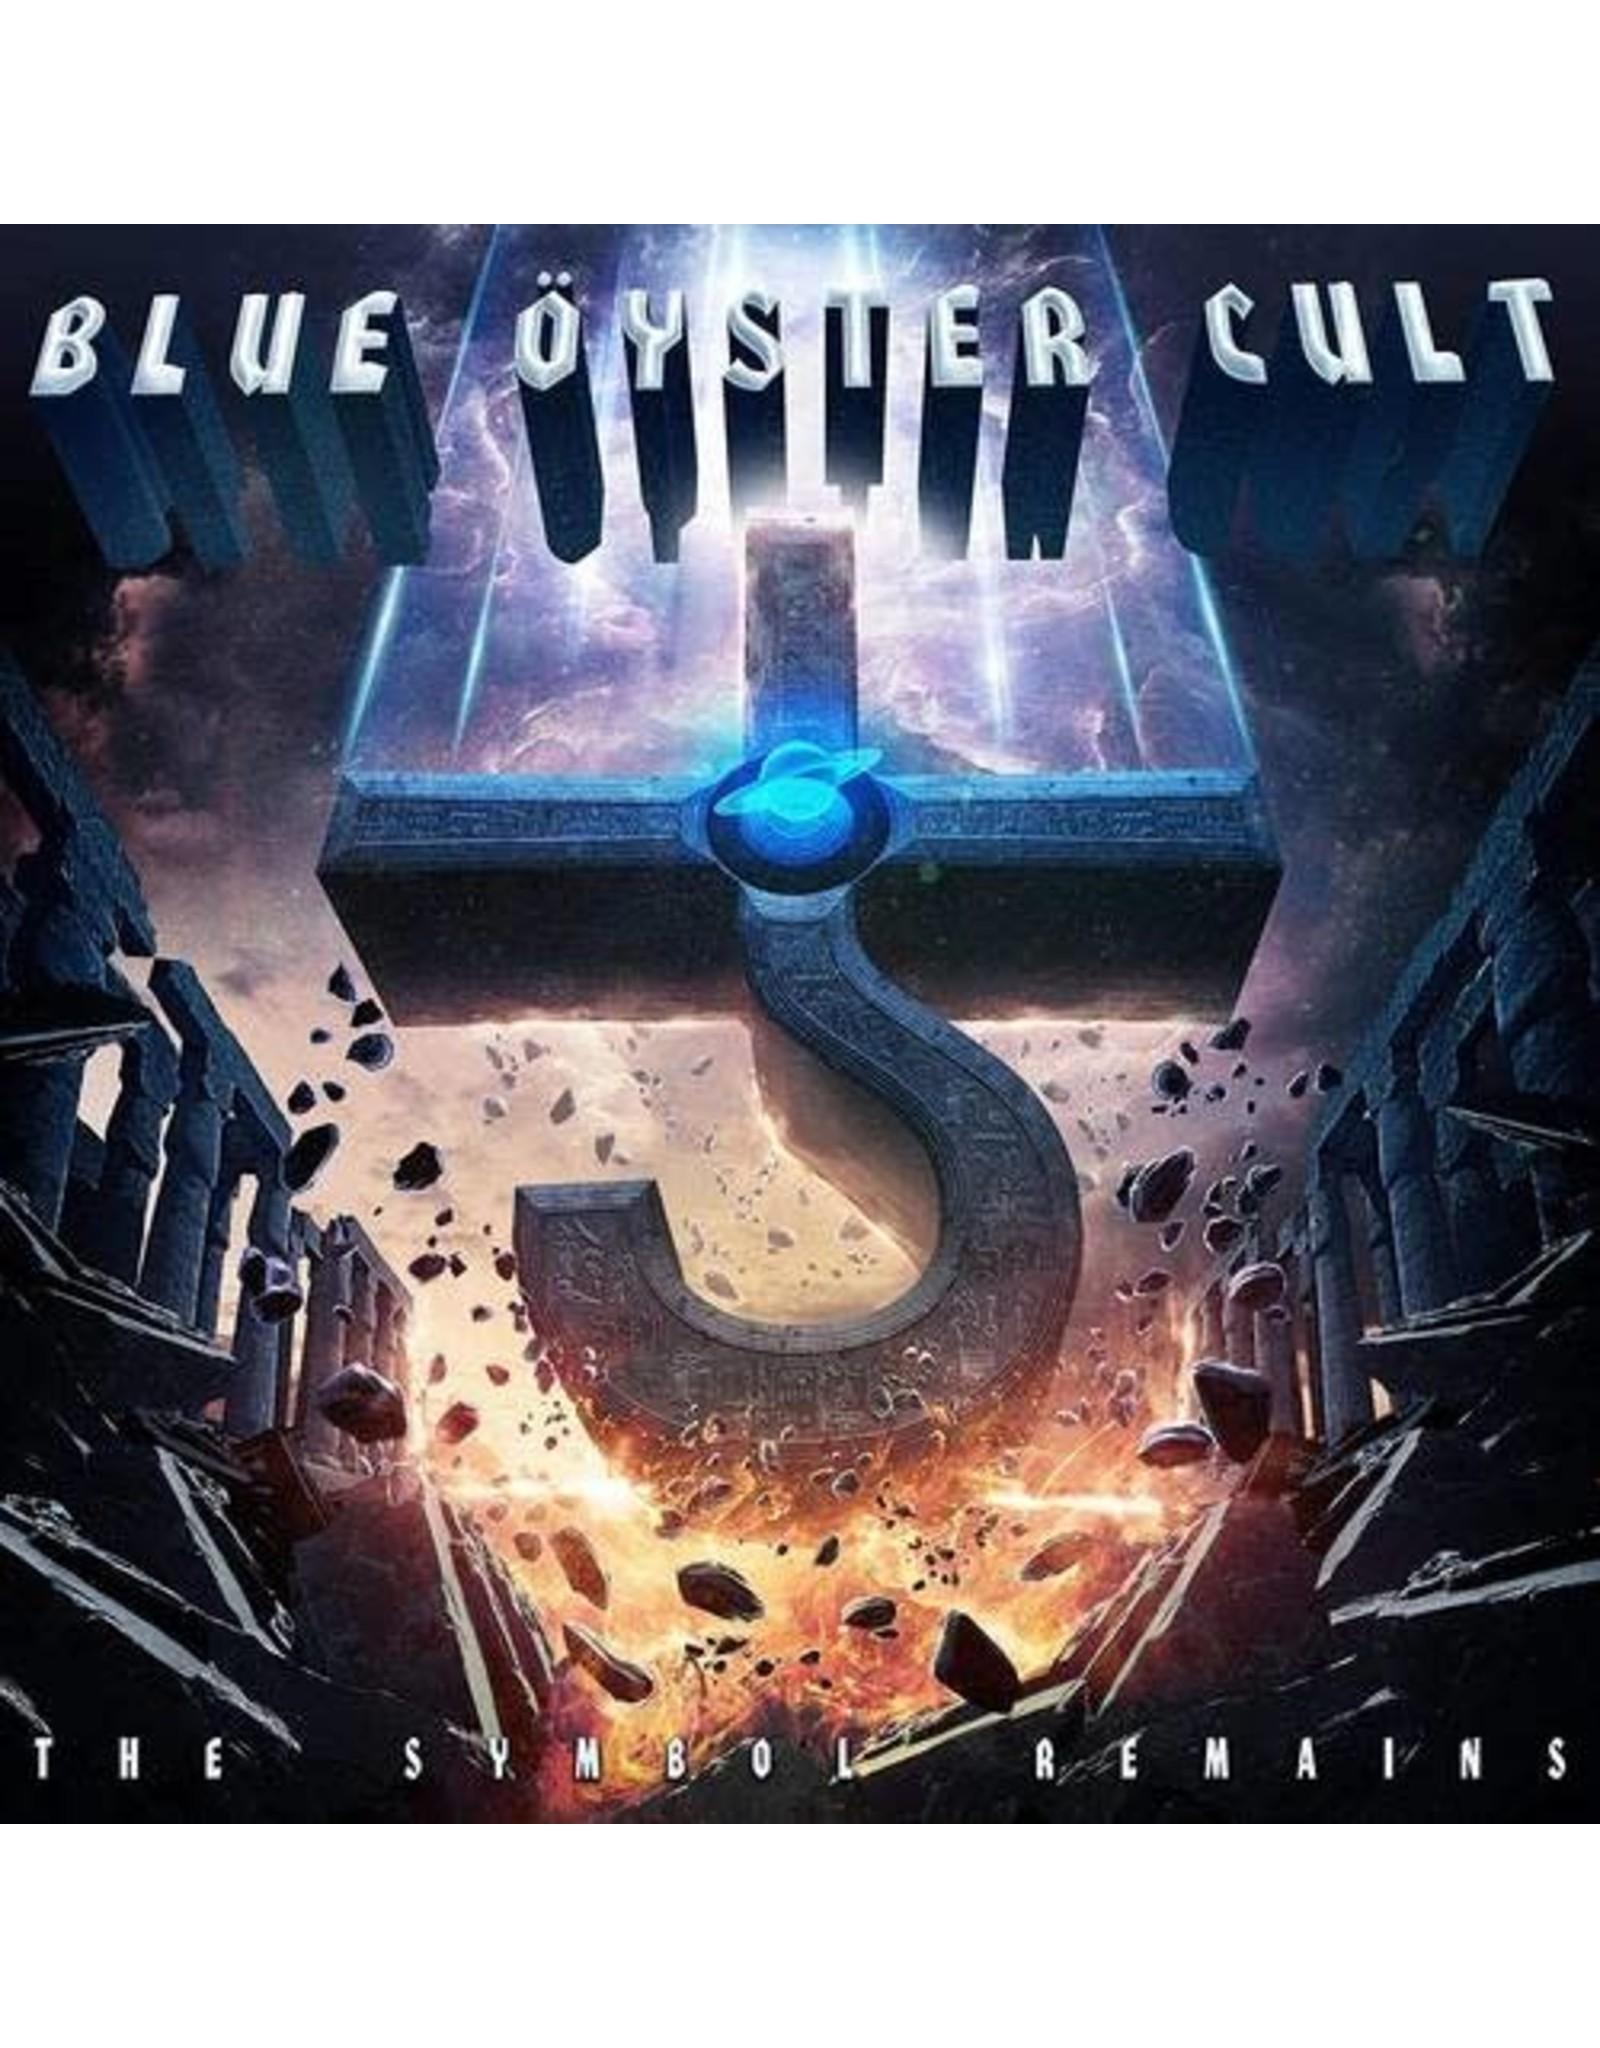 Blue Oyster Cult - The Symbol Remains CD